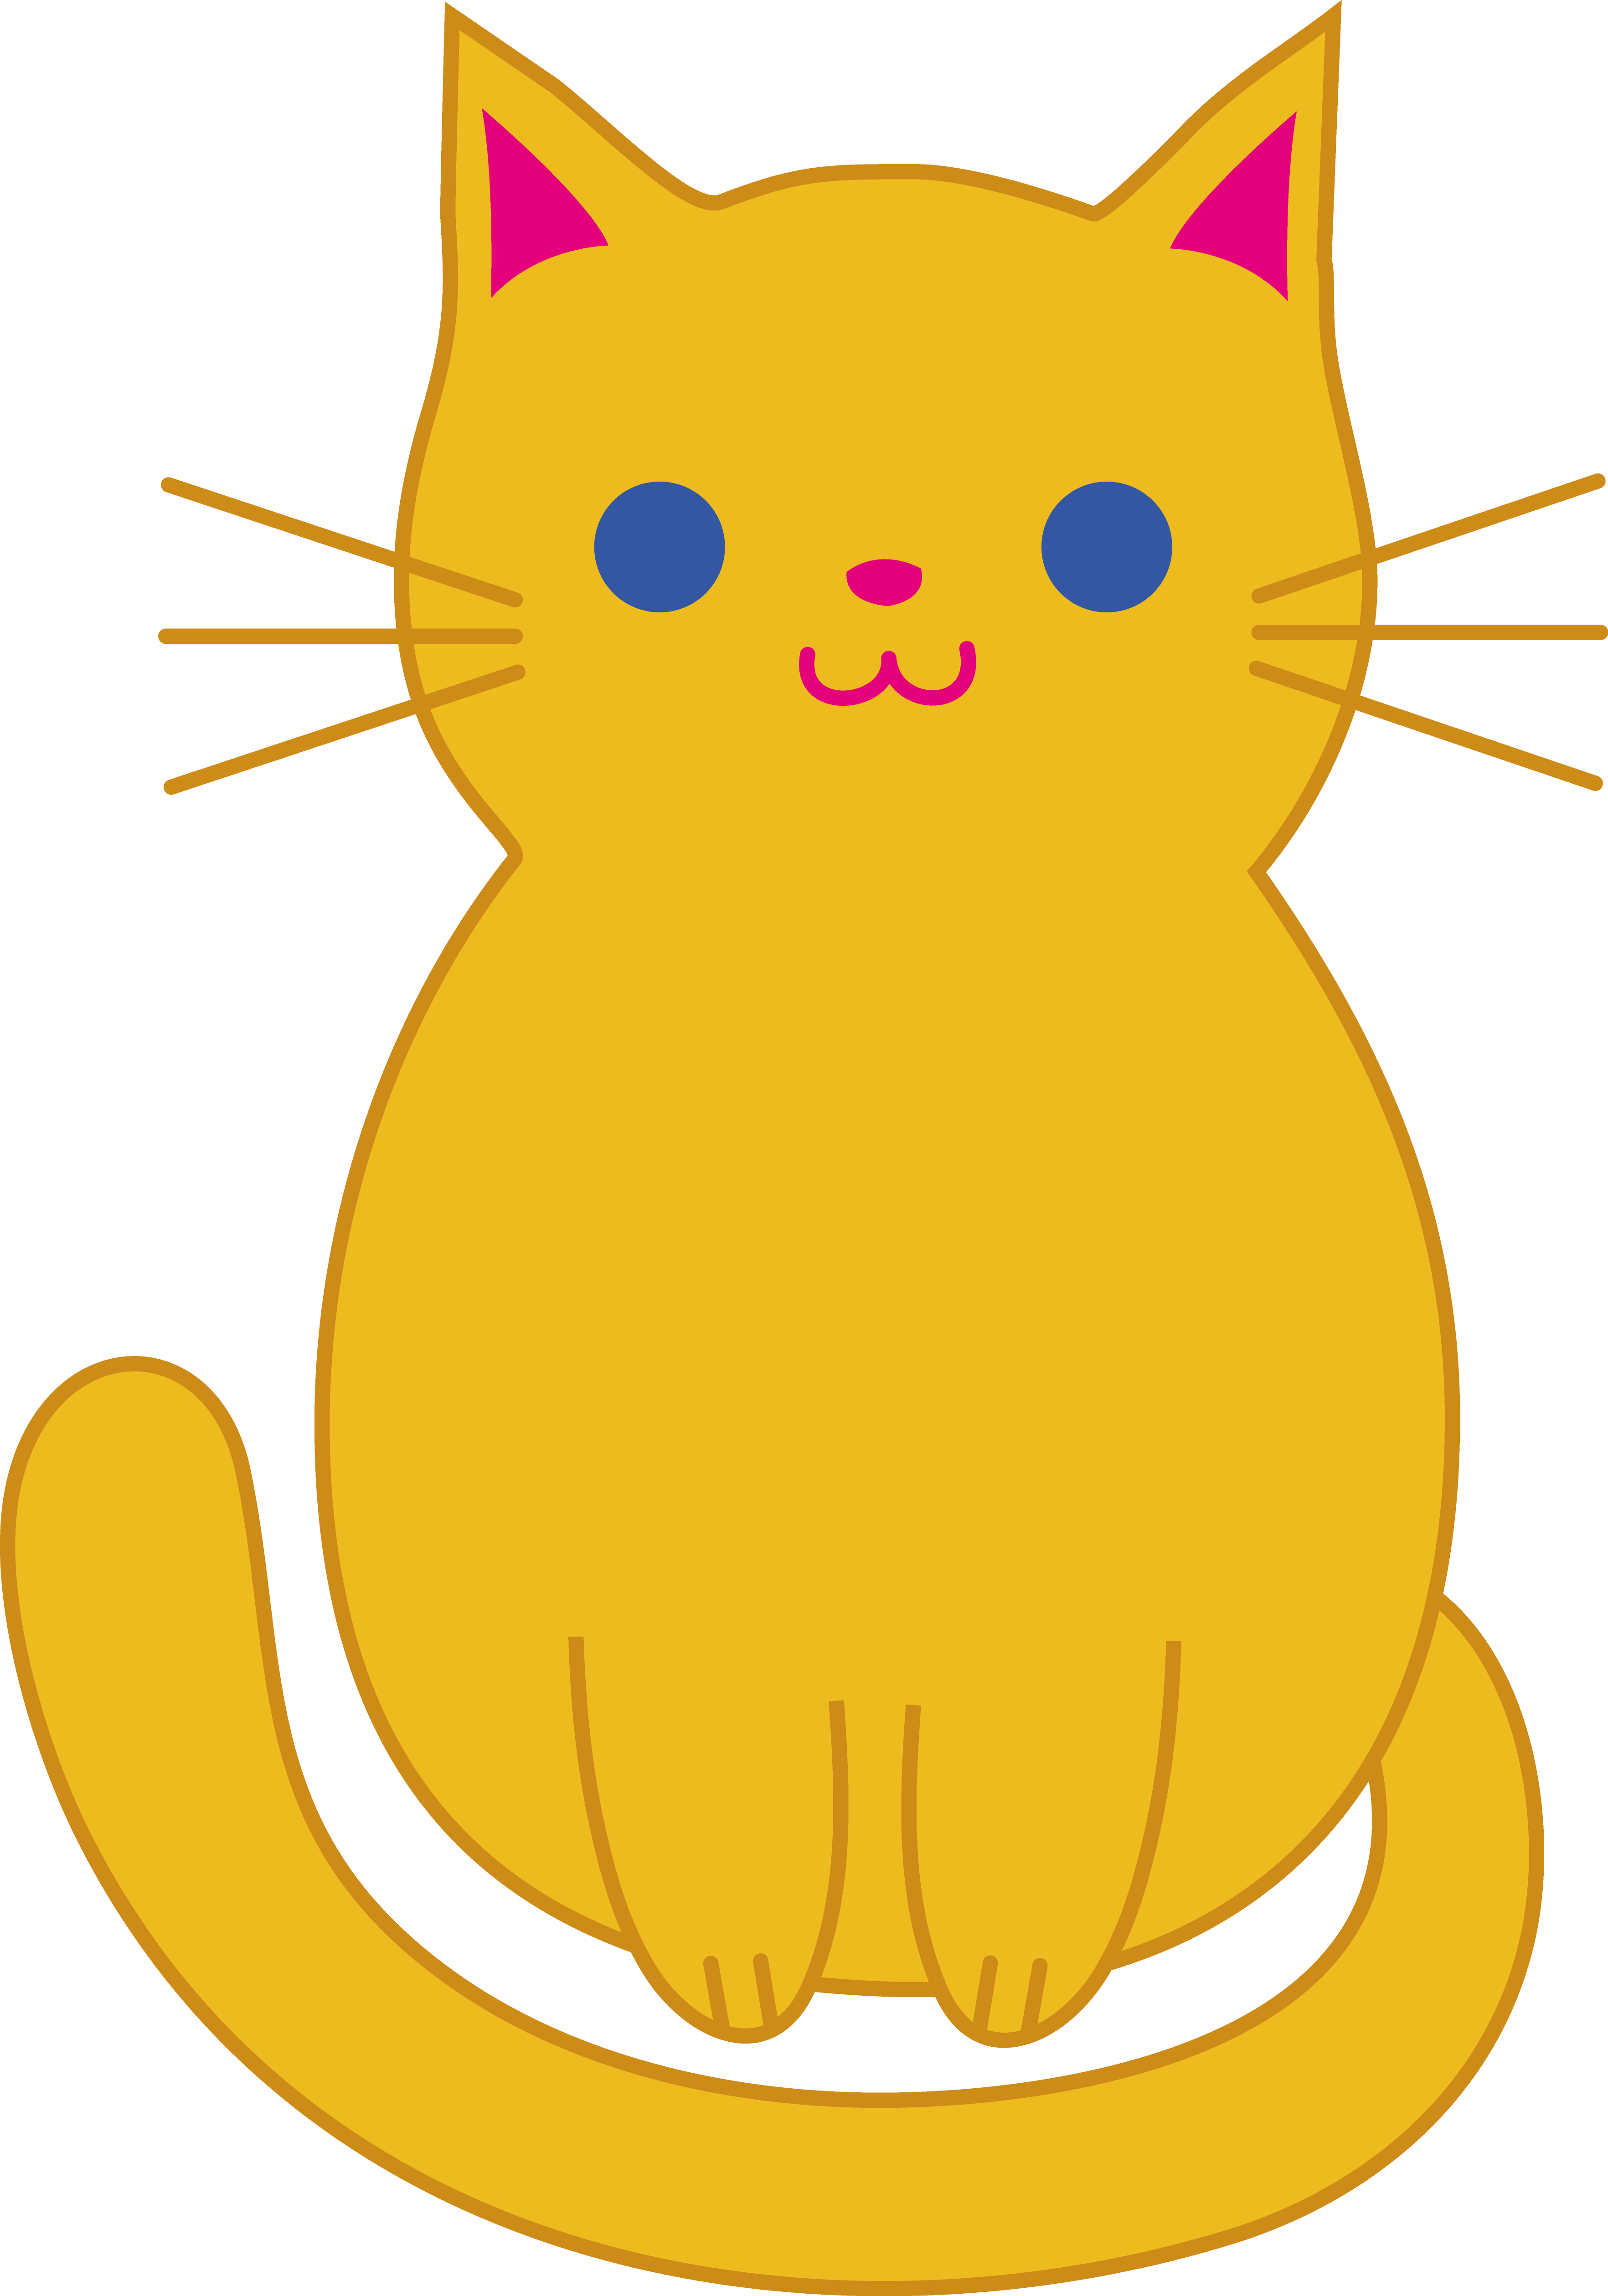 Clipart hammer cute. Anime kitten pencil and